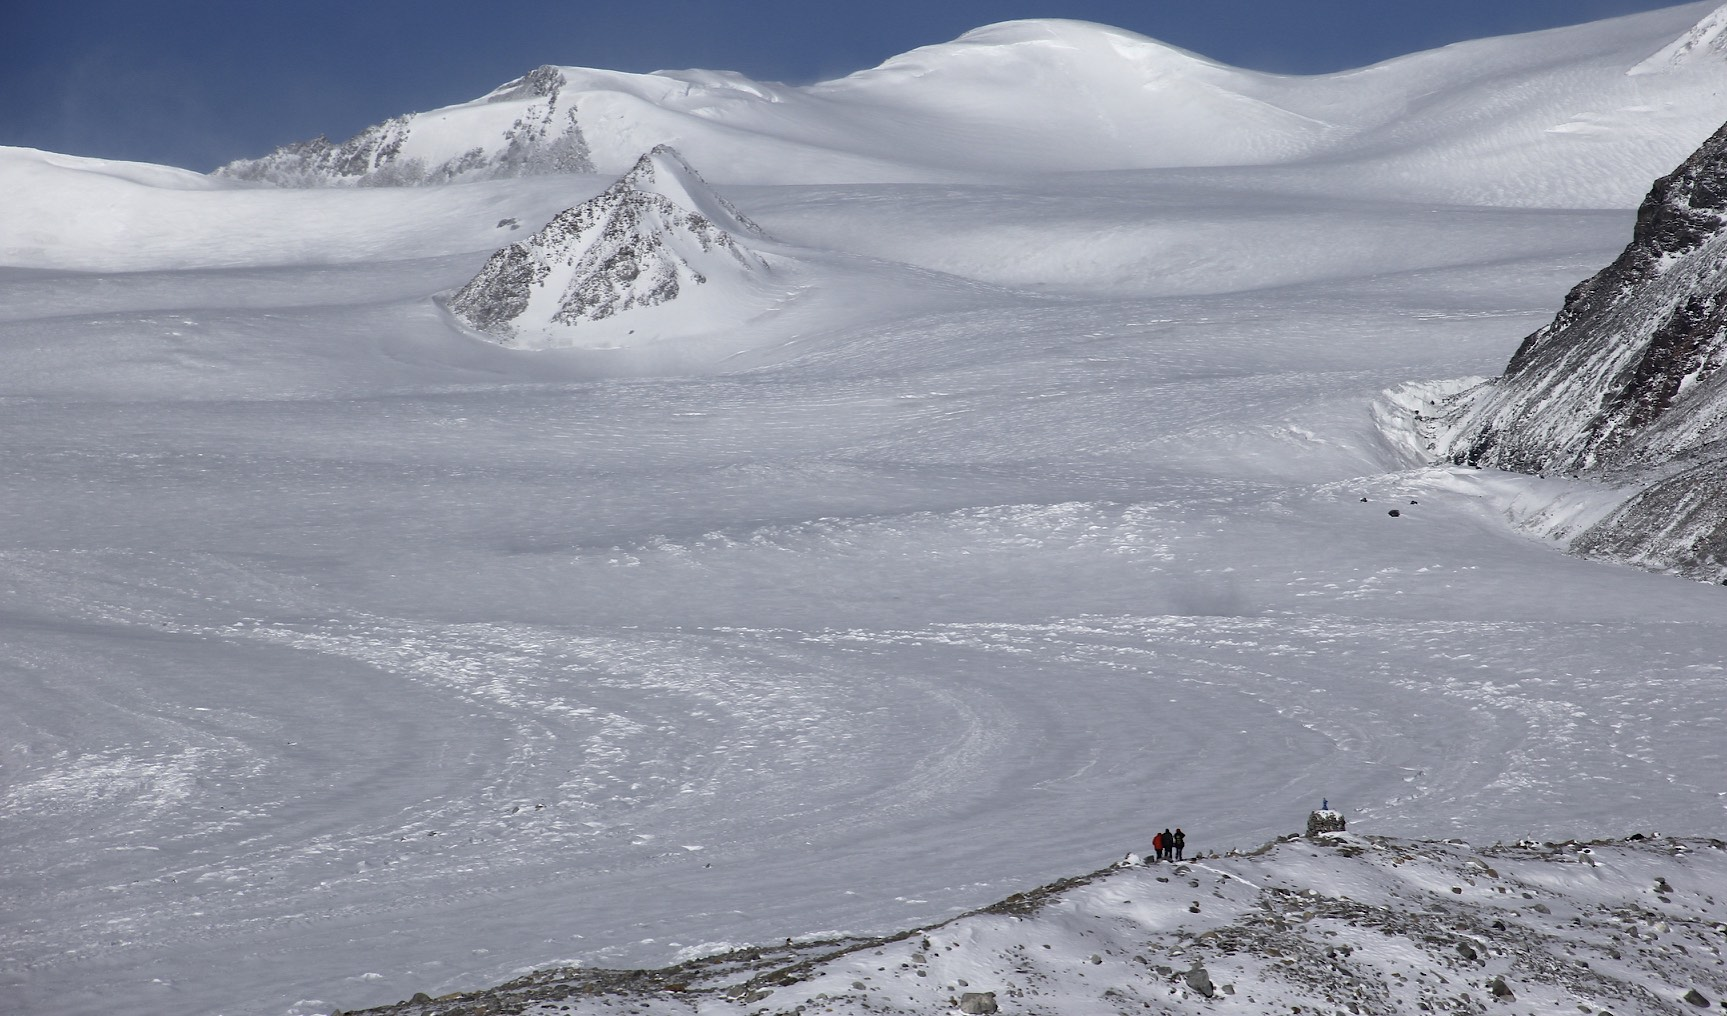 The glaciers of the Mongolian Altai